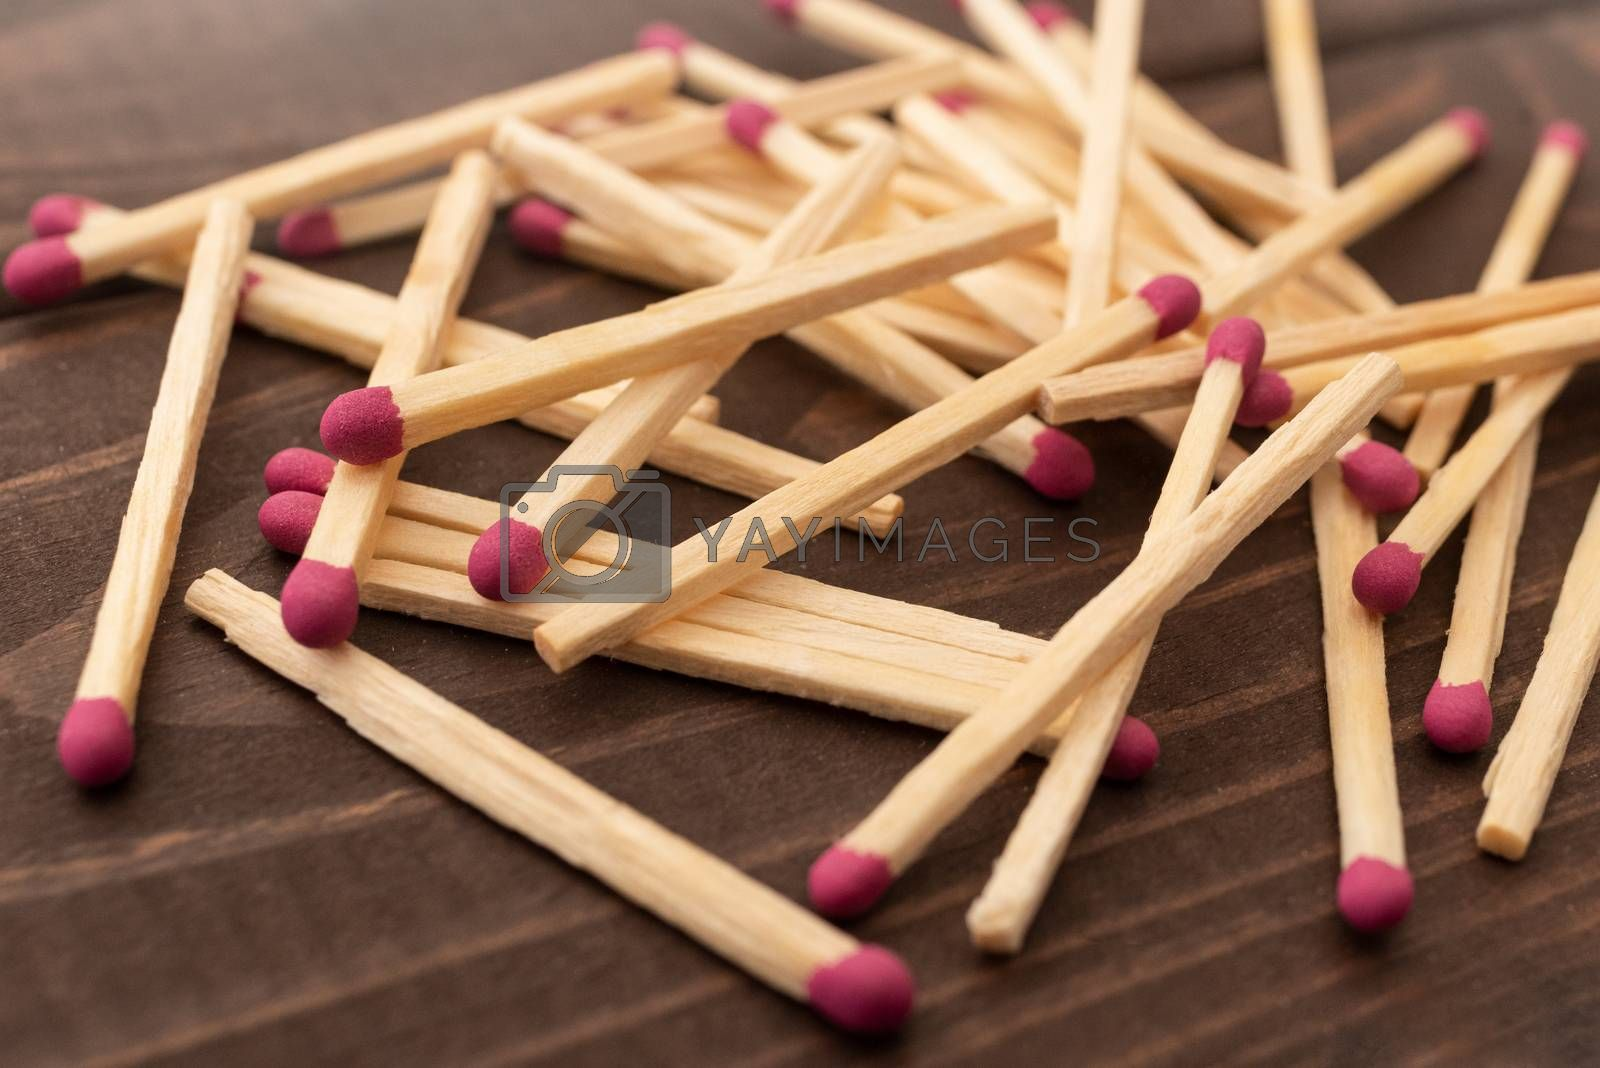 Matches on a white isolated background. Matches on a wooden background. Matches